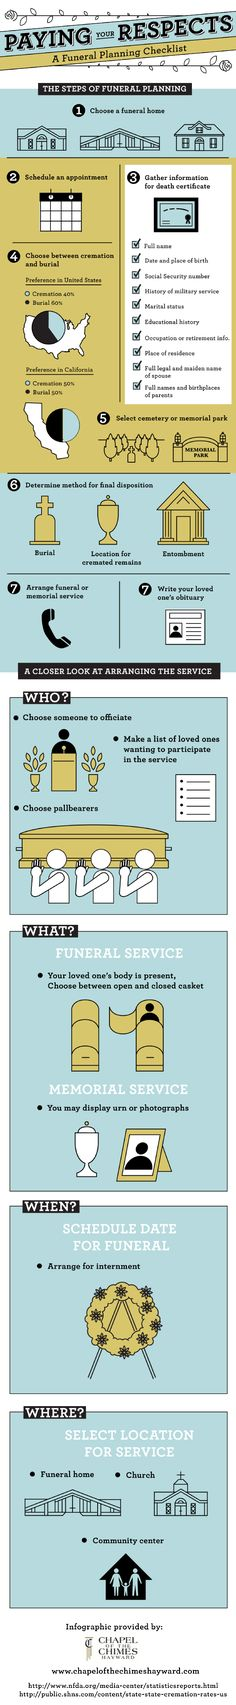 If you are in charge of planning a funeral, you may not know where to start. This infographic gives you information that simplifies the decision-making process when dealing with a loved one's death. Infographic Source: http://www.chapelofthechimeshayward.com/635750/2013/01/30/your-funeral-planning-checklist-infographic.html